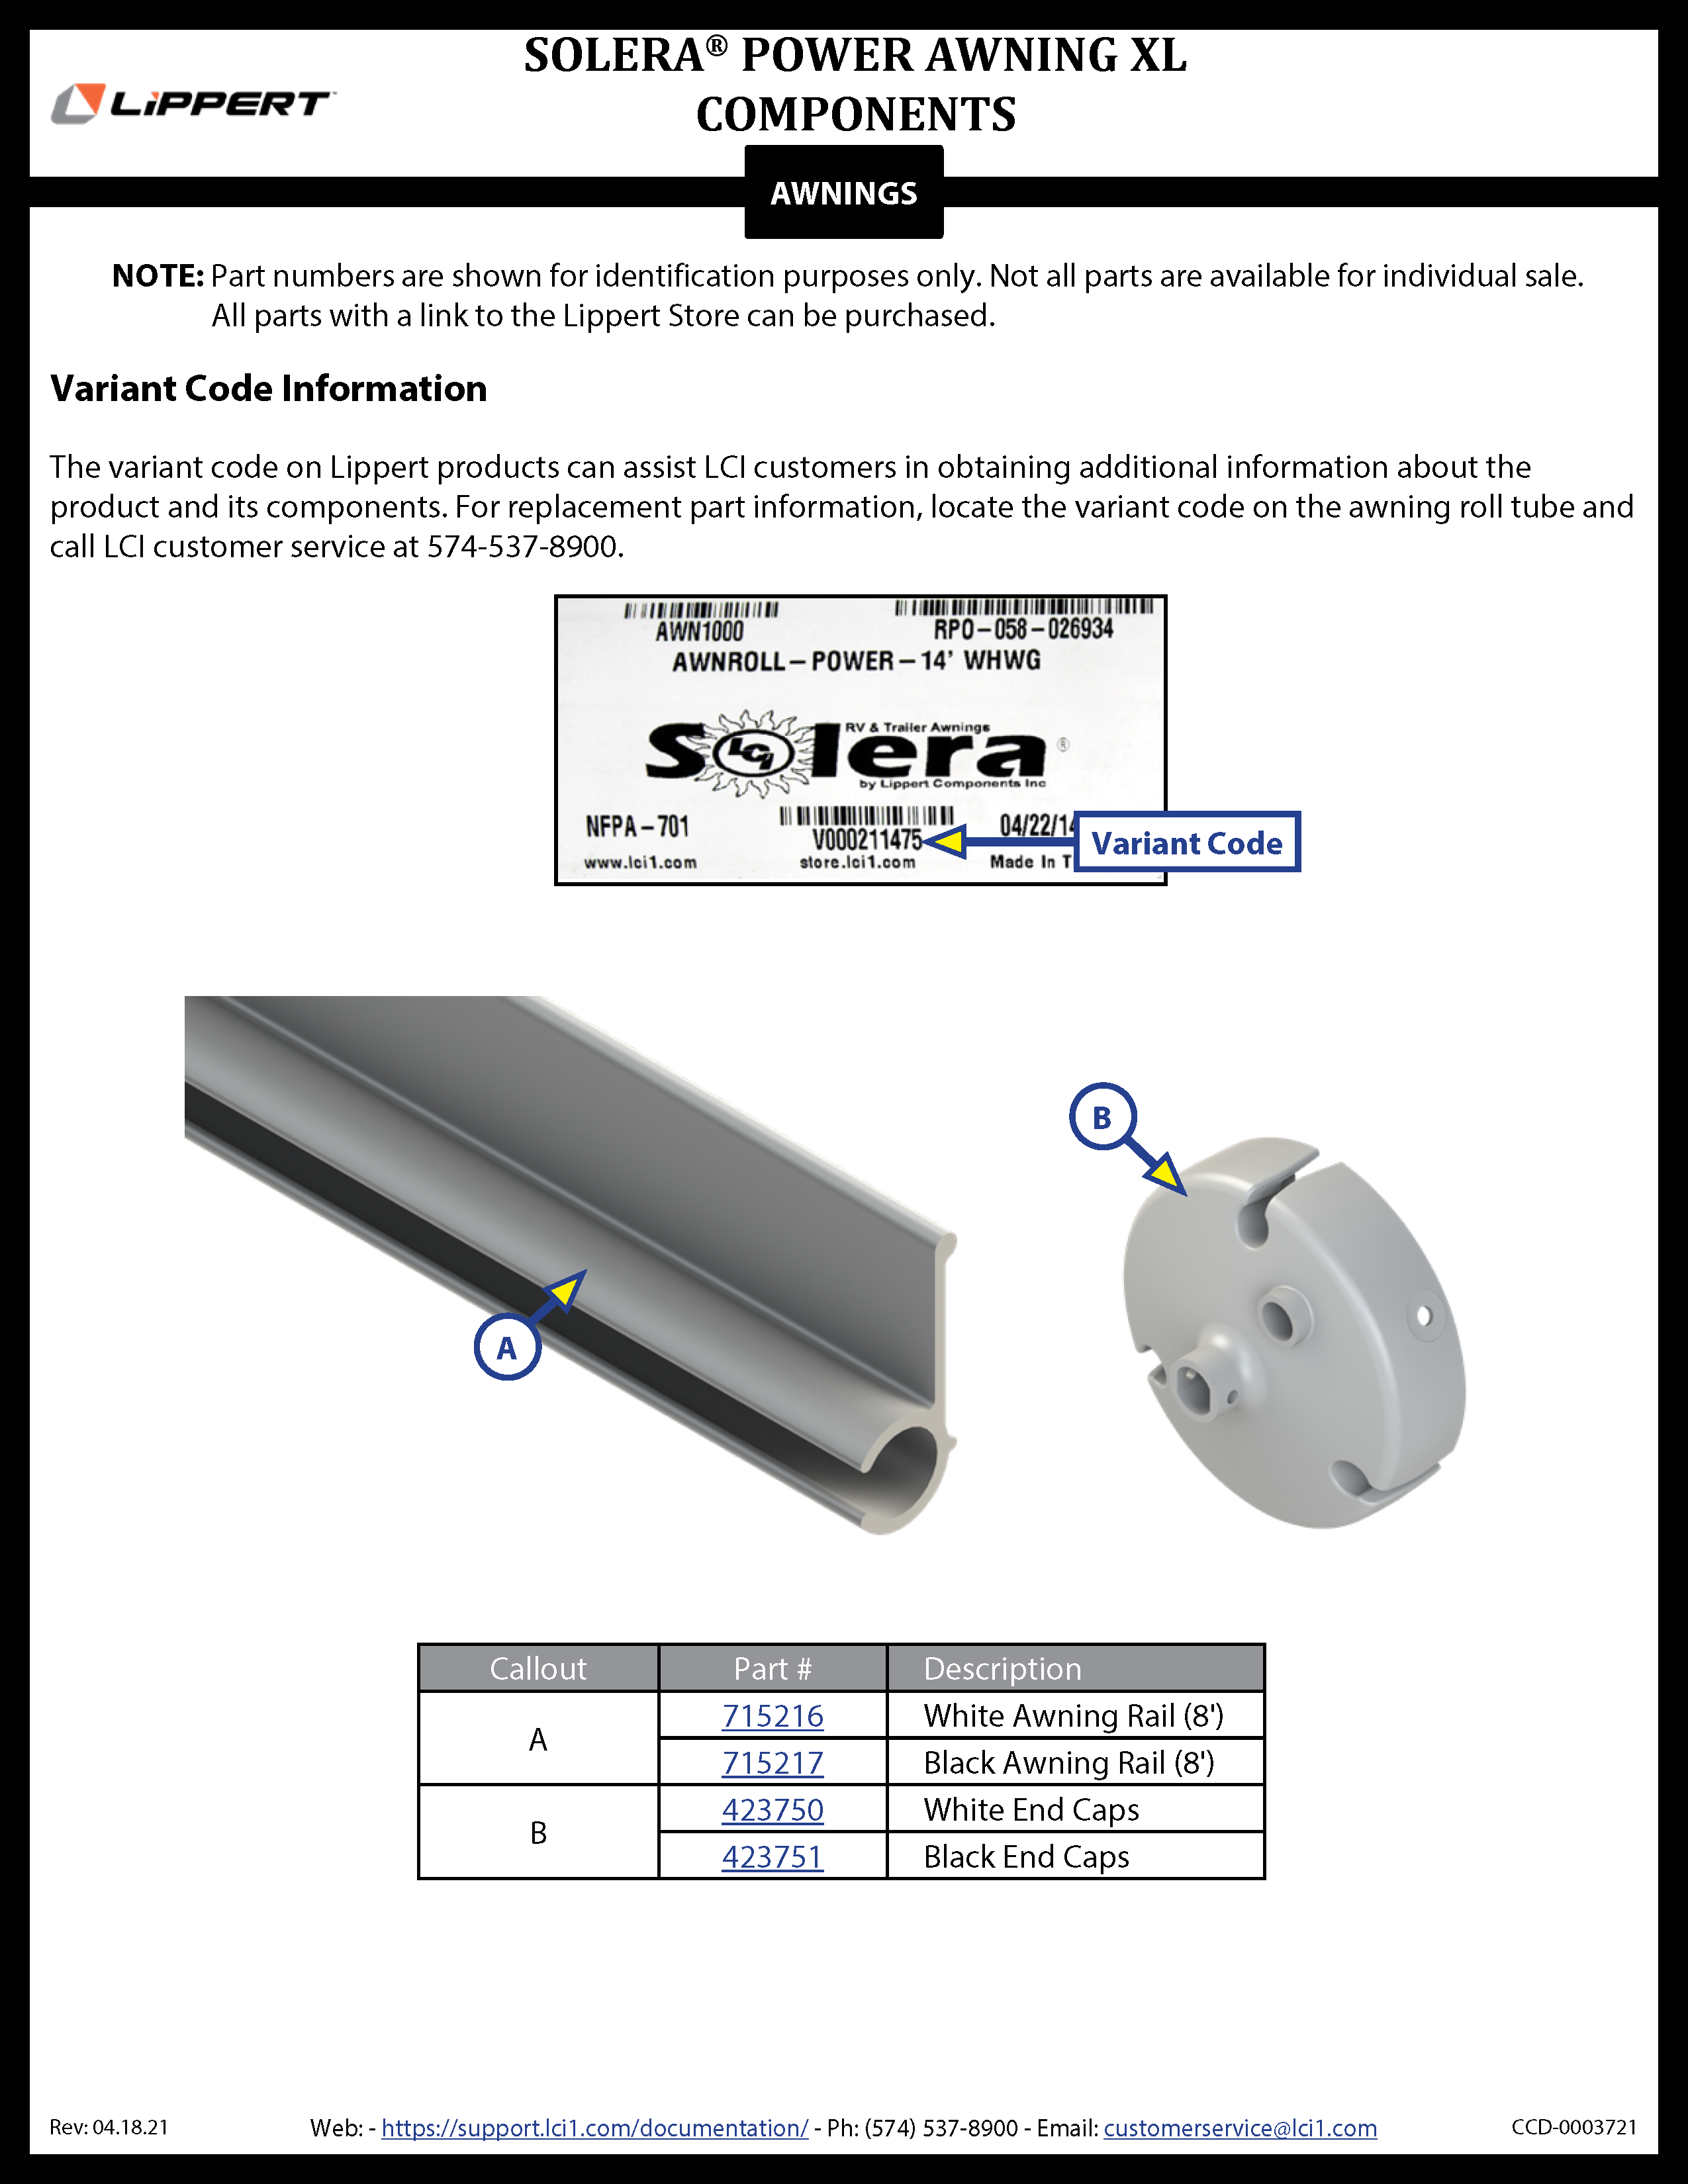 Solera® Power Awning XL Components